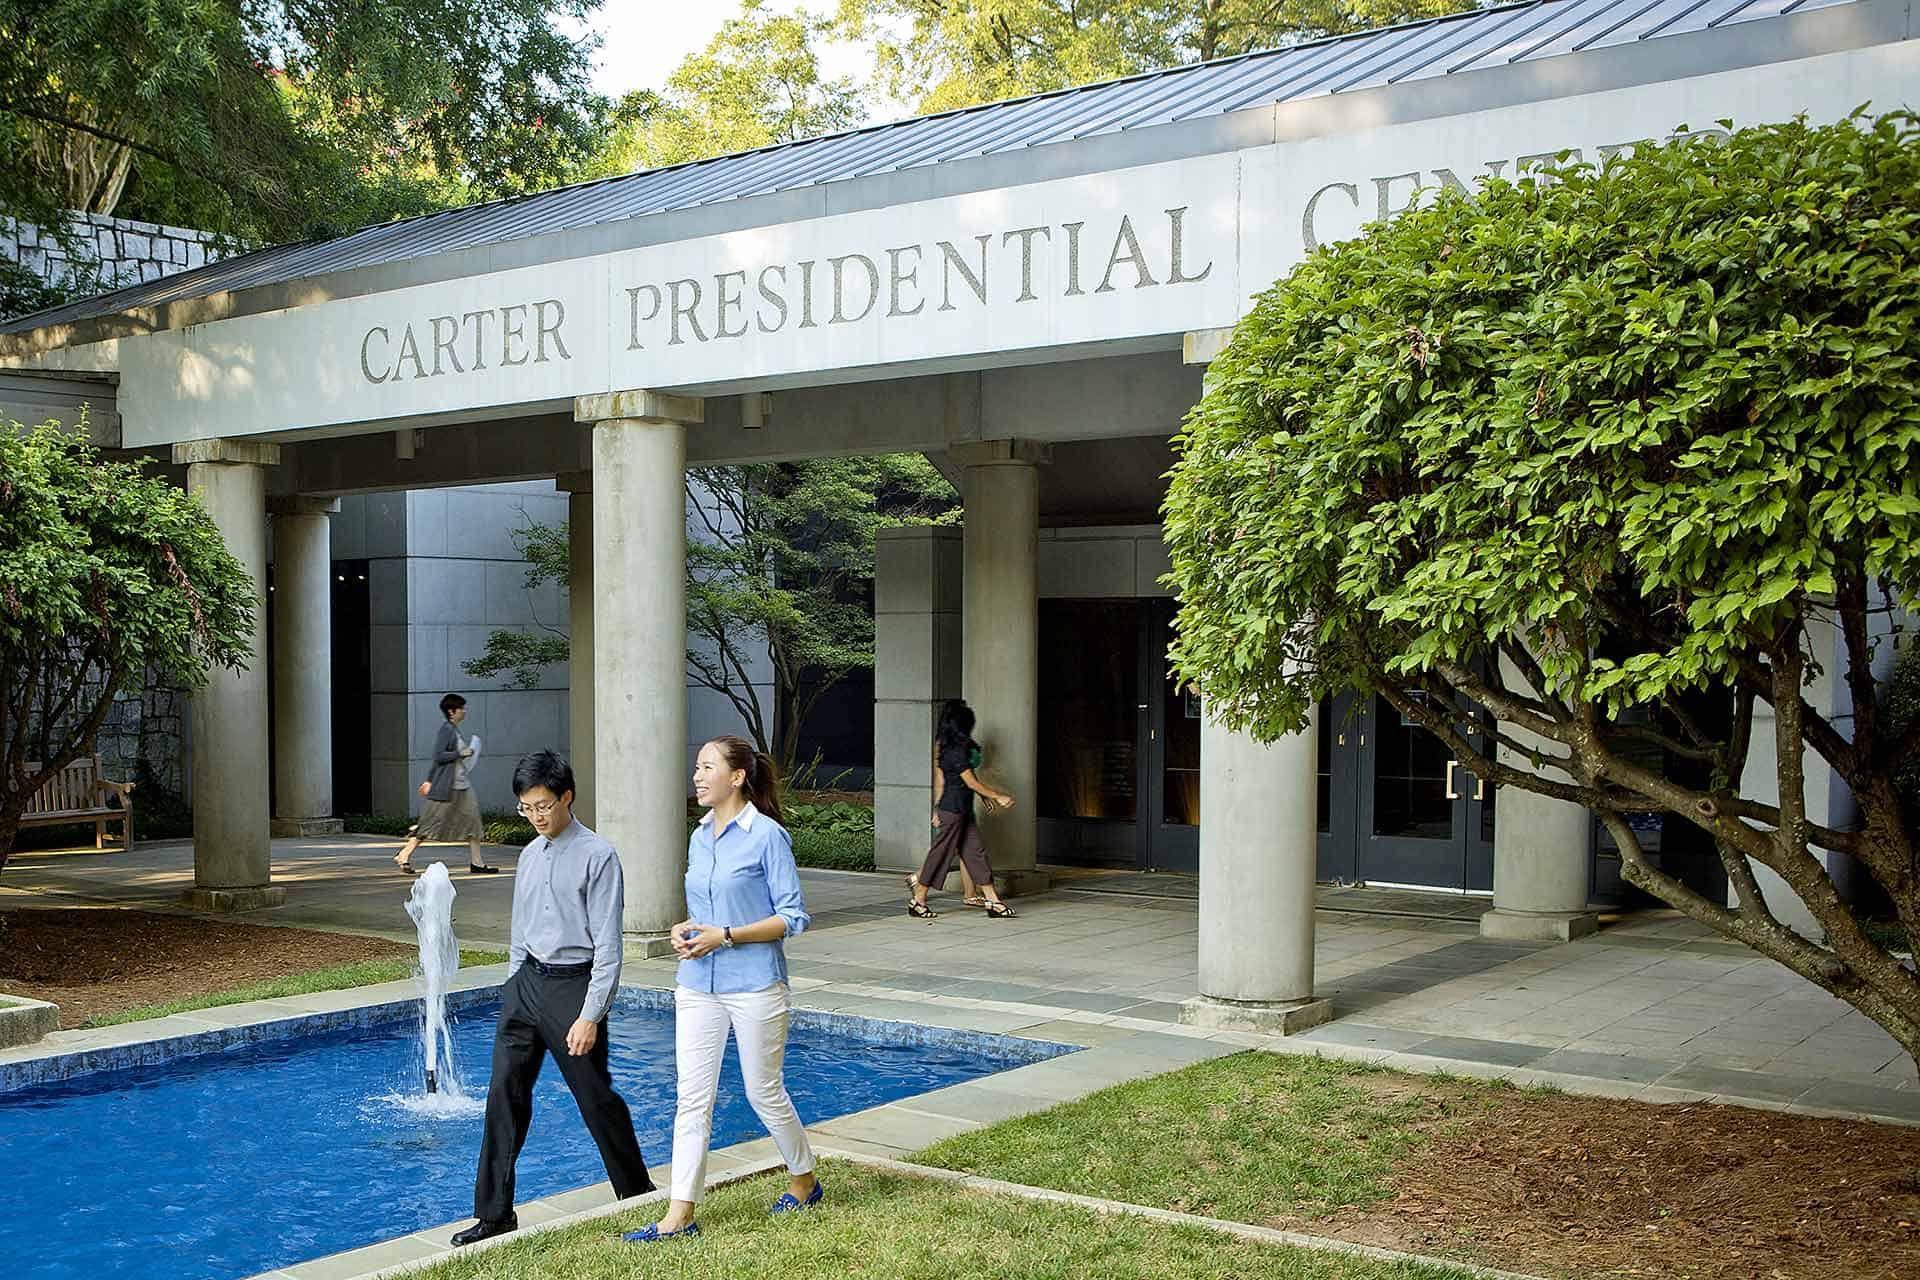 Carter Center Presidential Library and Museum   441 Freedom Parkway, Atlanta 404-420-5100  Highlights of the Carter Center Presidential Library and Museum include a 30-minute film about the presidency, children's exhibits, a life-size replica of the Oval office, Jimmy Carter's presidential documents, memorabilia, and touch-sensory video screens with questions visitors can ask the former president. Special exhibits available as well.  ALL TOURS ARE SELF-GUIDED.  Hours: Monday-Saturday 9:00 am - 4:00 pm Sunday 12:00 pm - 4:00 pm  Maximum of 50.